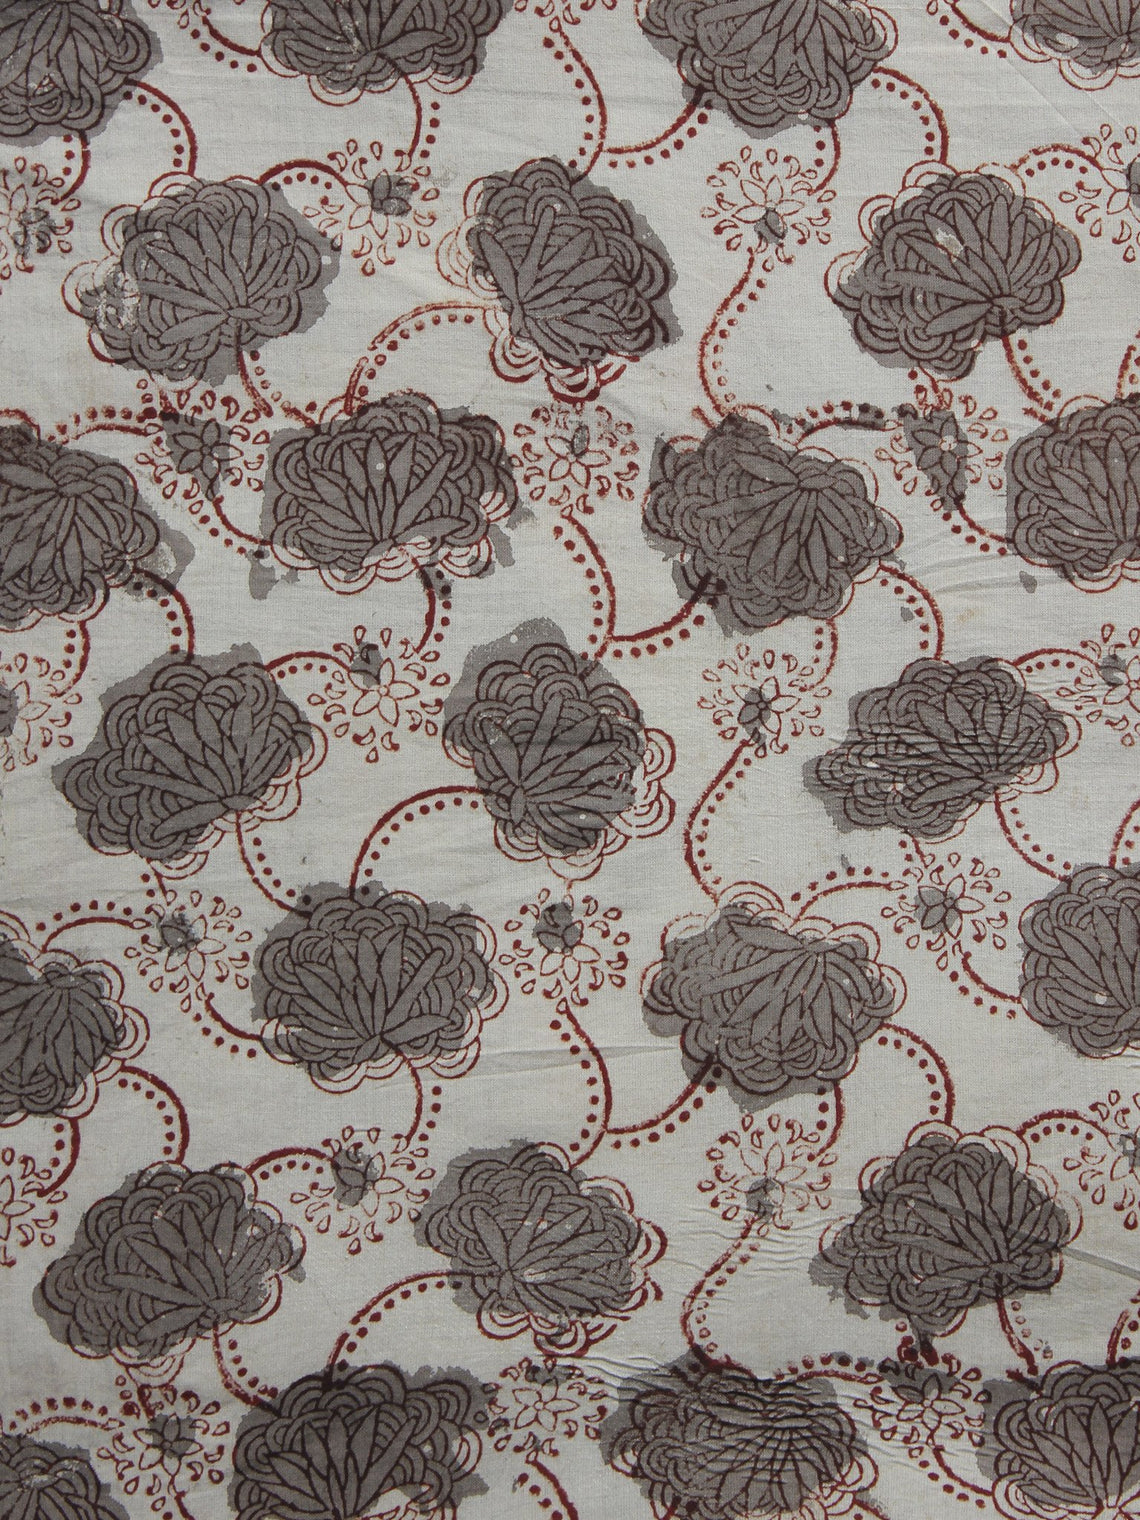 Ivory Kashish Maroon Hand Block Printed Cotton Fabric Per Meter - F001F959